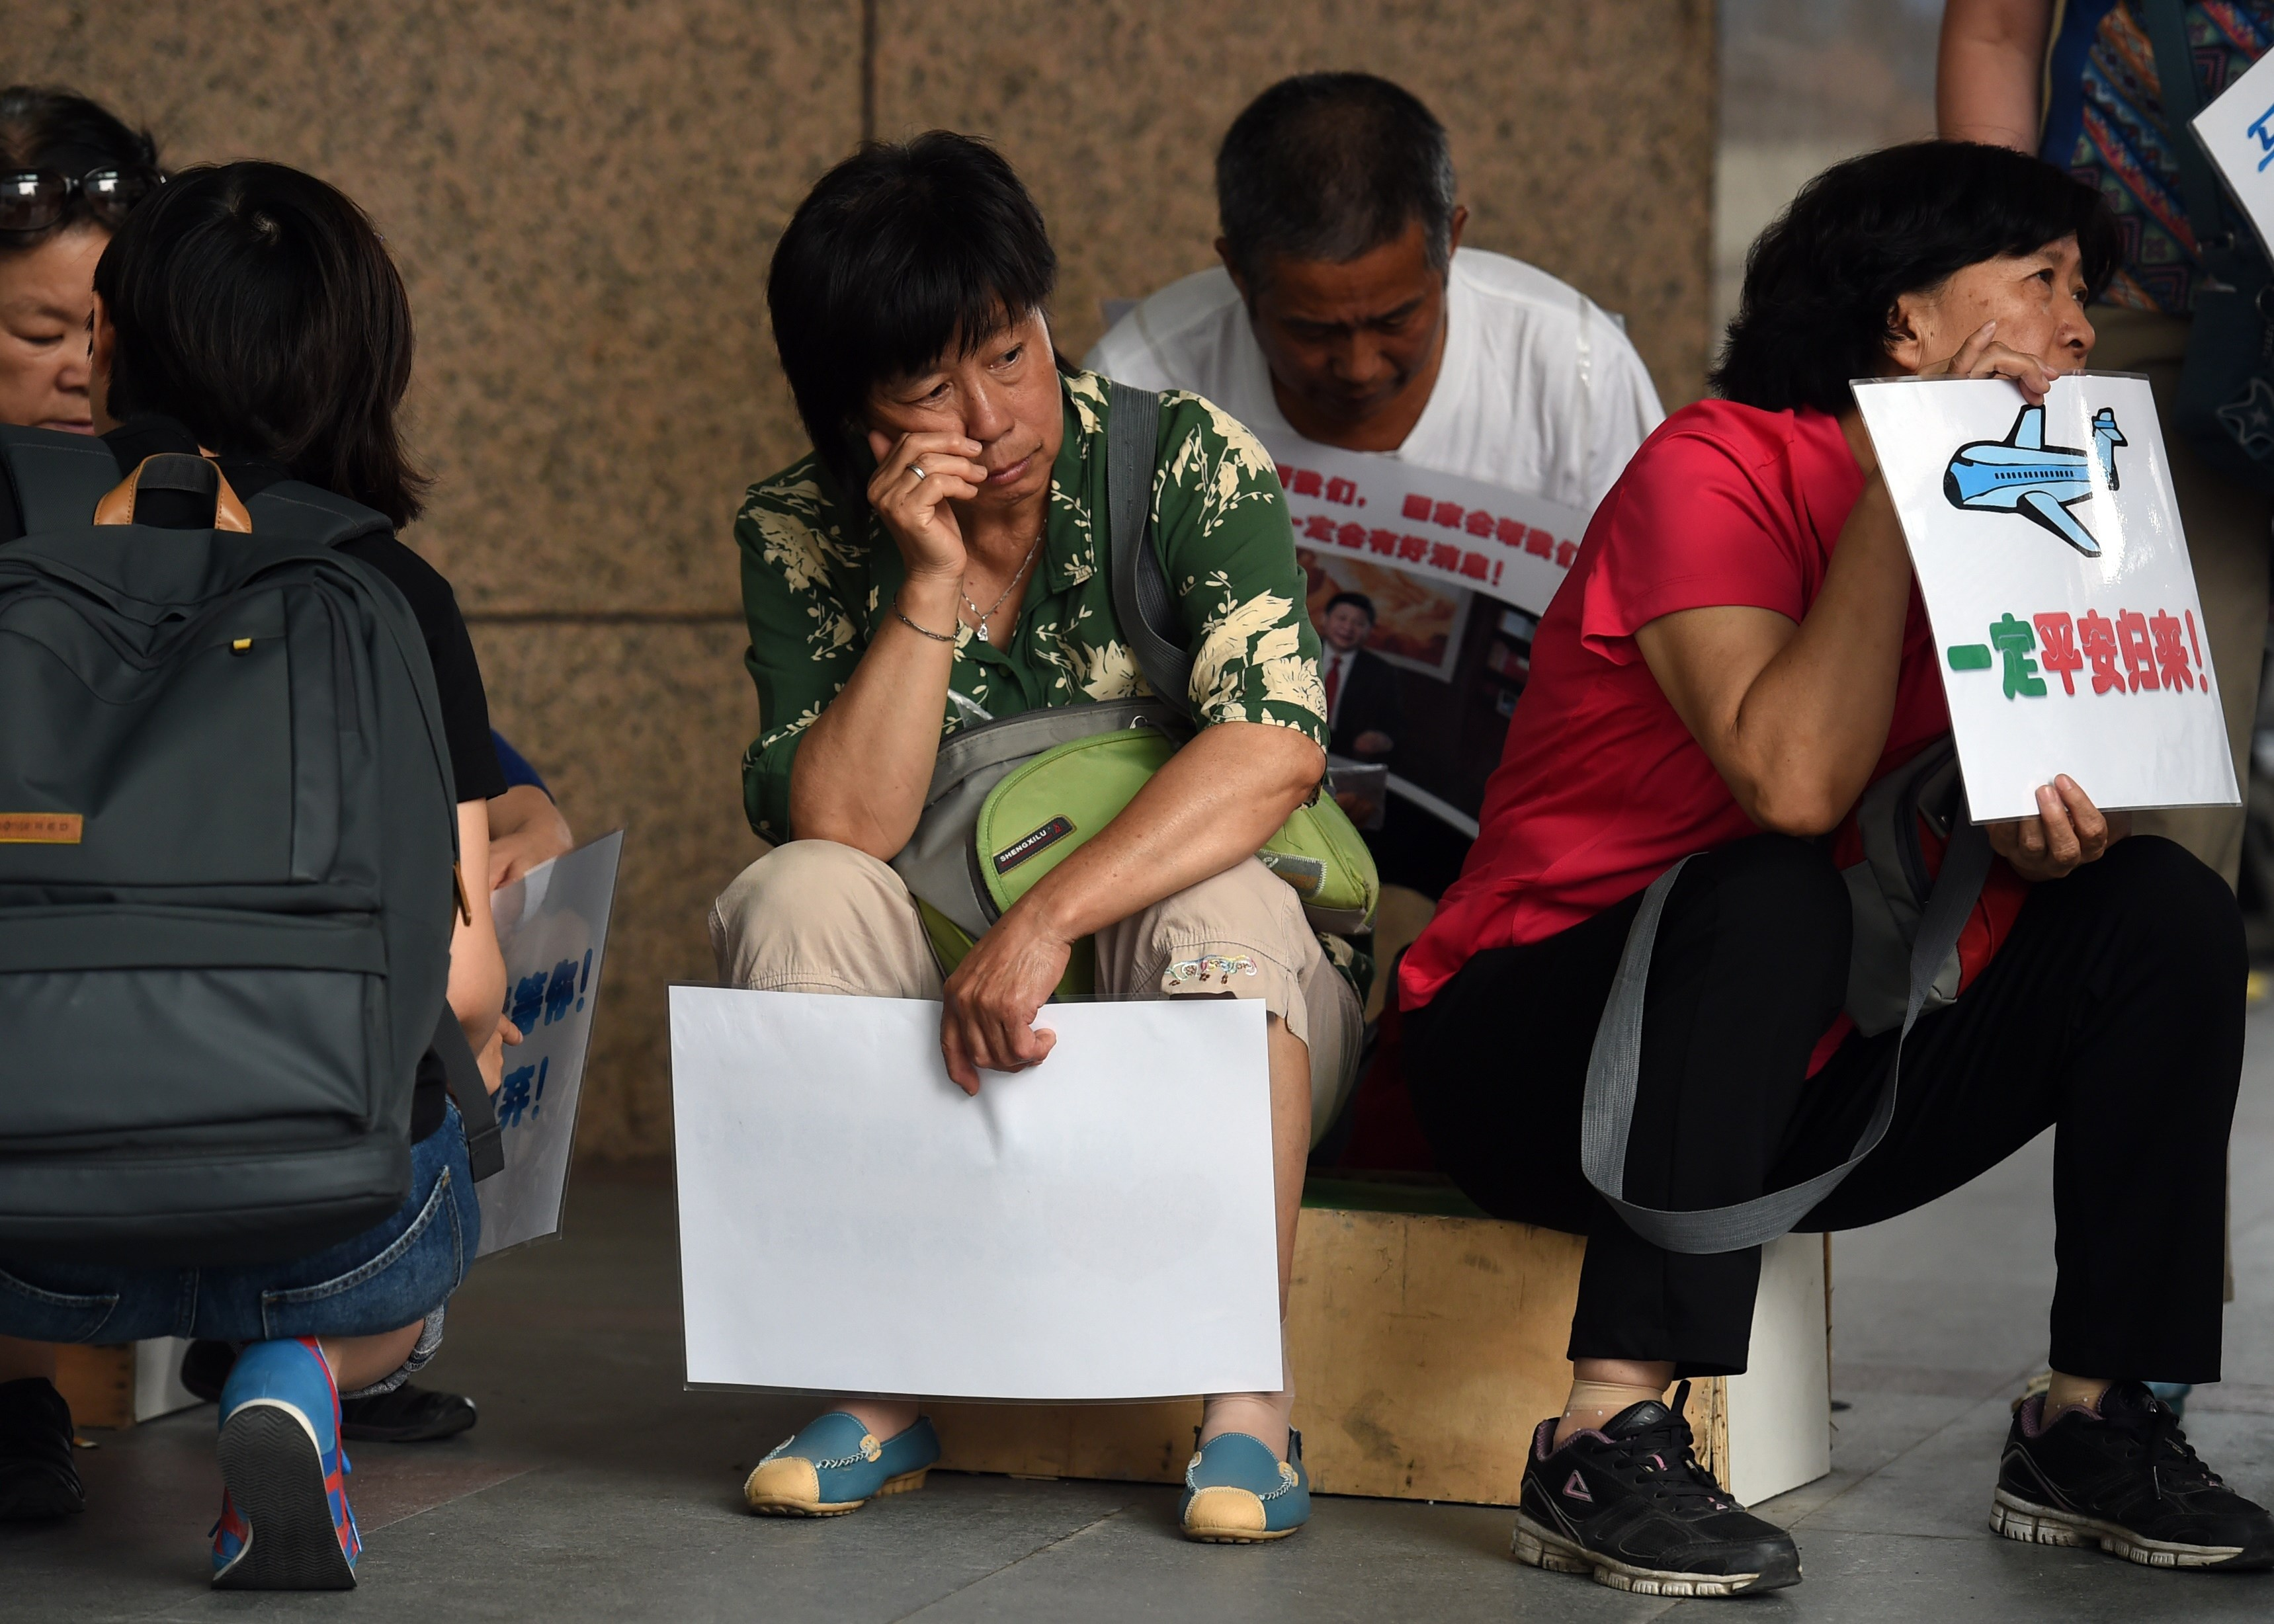 Relatives of passengers on missing Malaysia Airlines MH370 wait outside the Malaysia Airlines office in Beijing on August 6, 2015.  Debris found on a remote island a week ago is from flight MH370, Malaysia's prime minister said, confirming that the plane which mysteriously disappeared 17 months ago met a tragic end in the Indian Ocean.    AFP PHOTO / GREG BAKER        (Photo credit should read GREG BAKER/AFP/Getty Images)